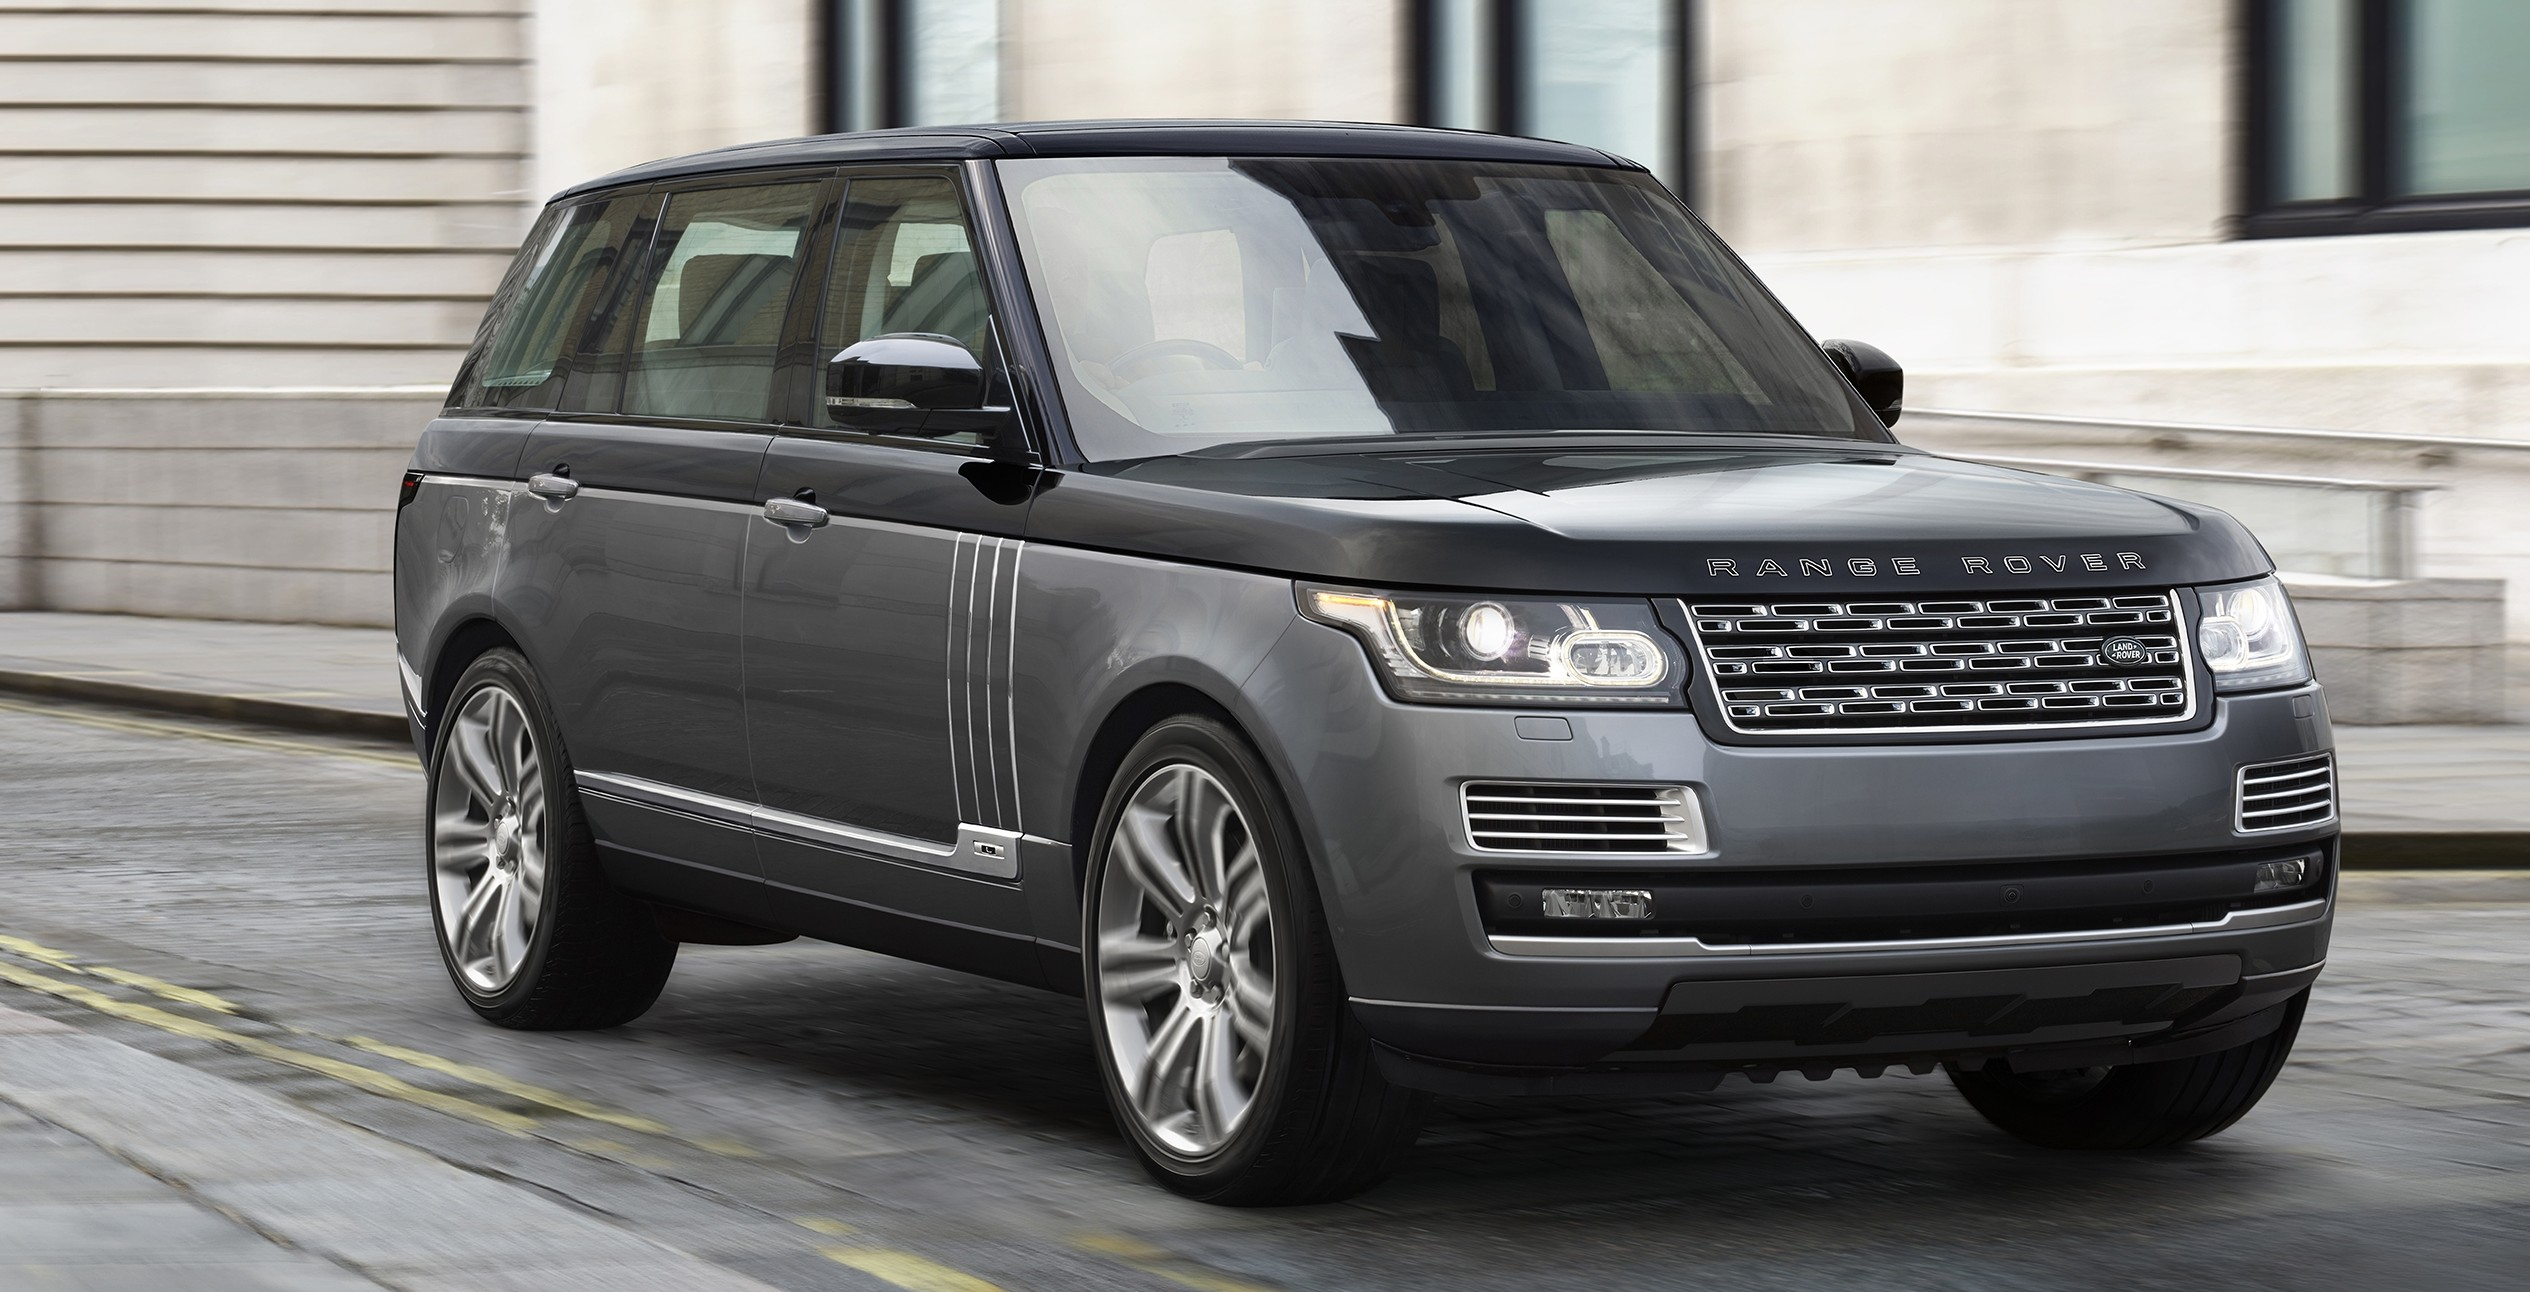 LAND ROVER 2016 MODEL YEAR LINEUP myAutoWorld